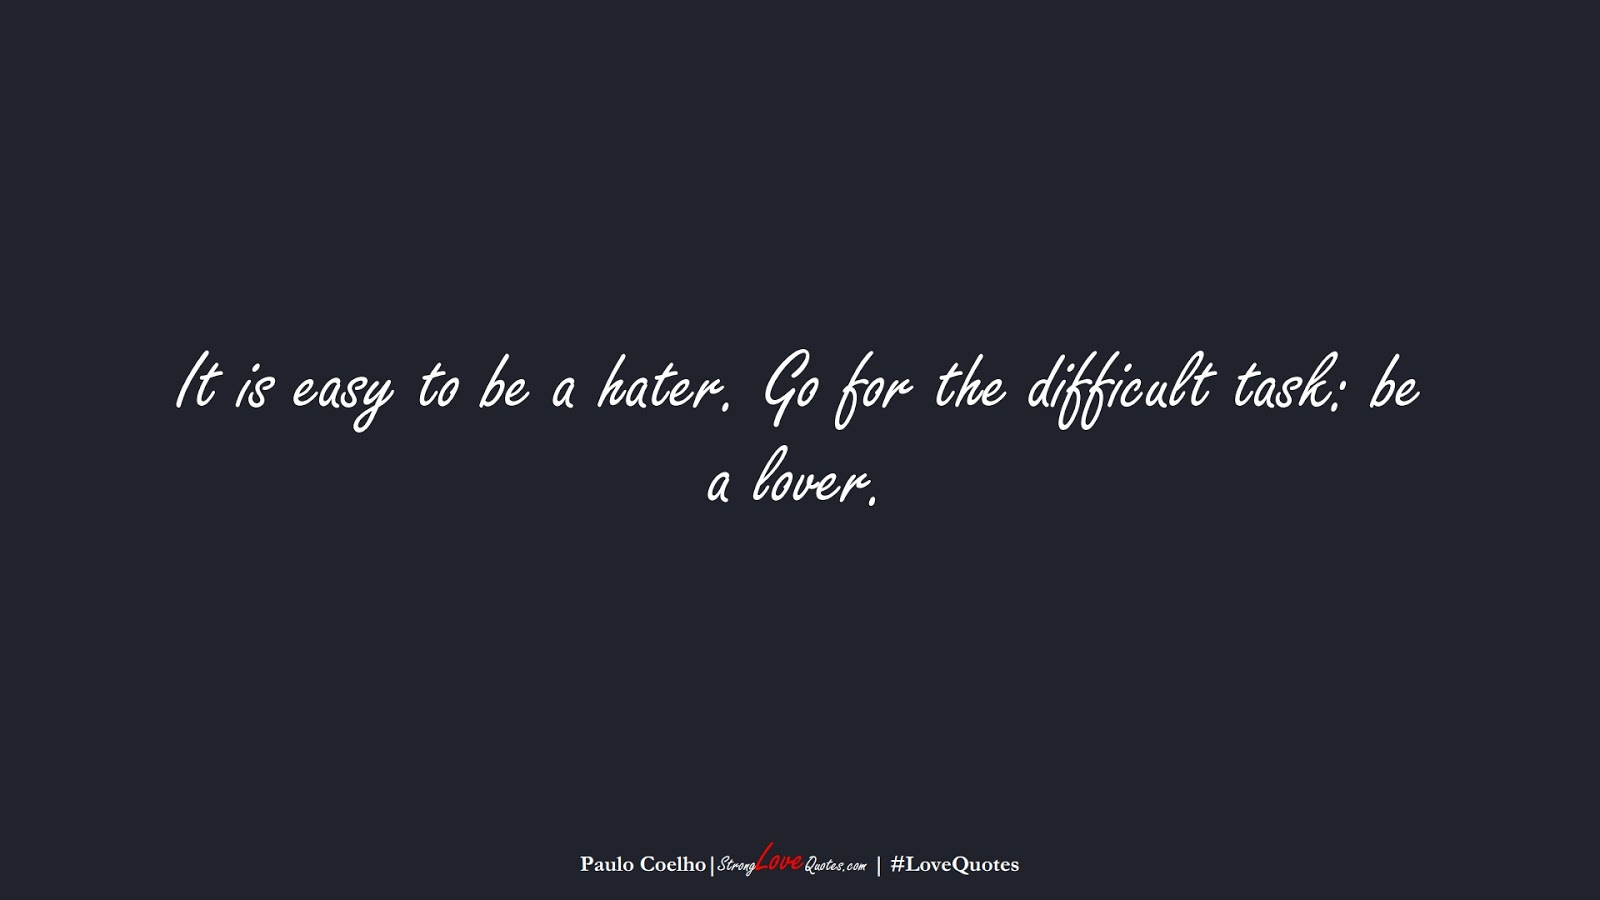 It is easy to be a hater. Go for the difficult task: be a lover. (Paulo Coelho);  #LoveQuotes